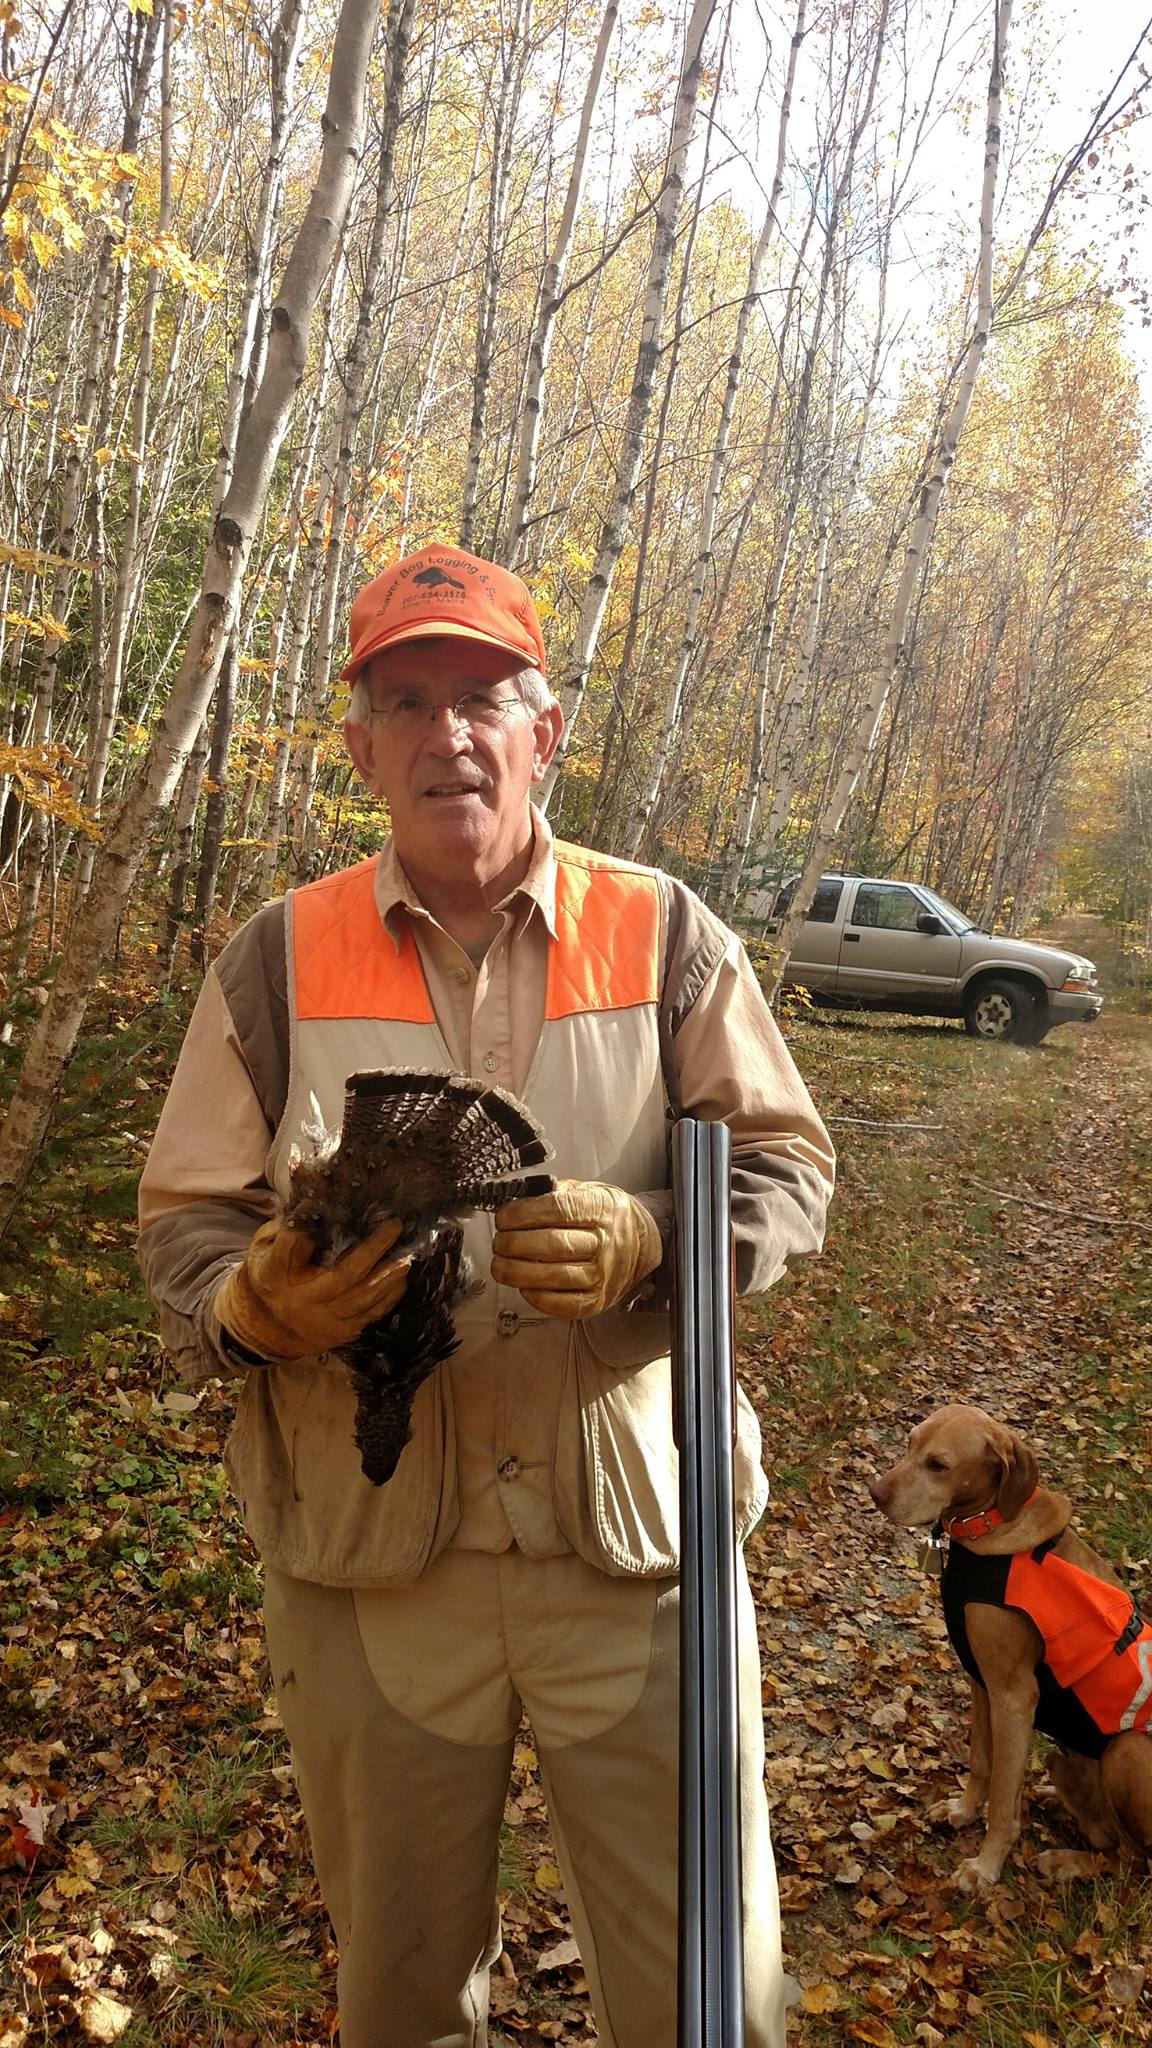 maine-upland-bird-hunting-15624296792110347125